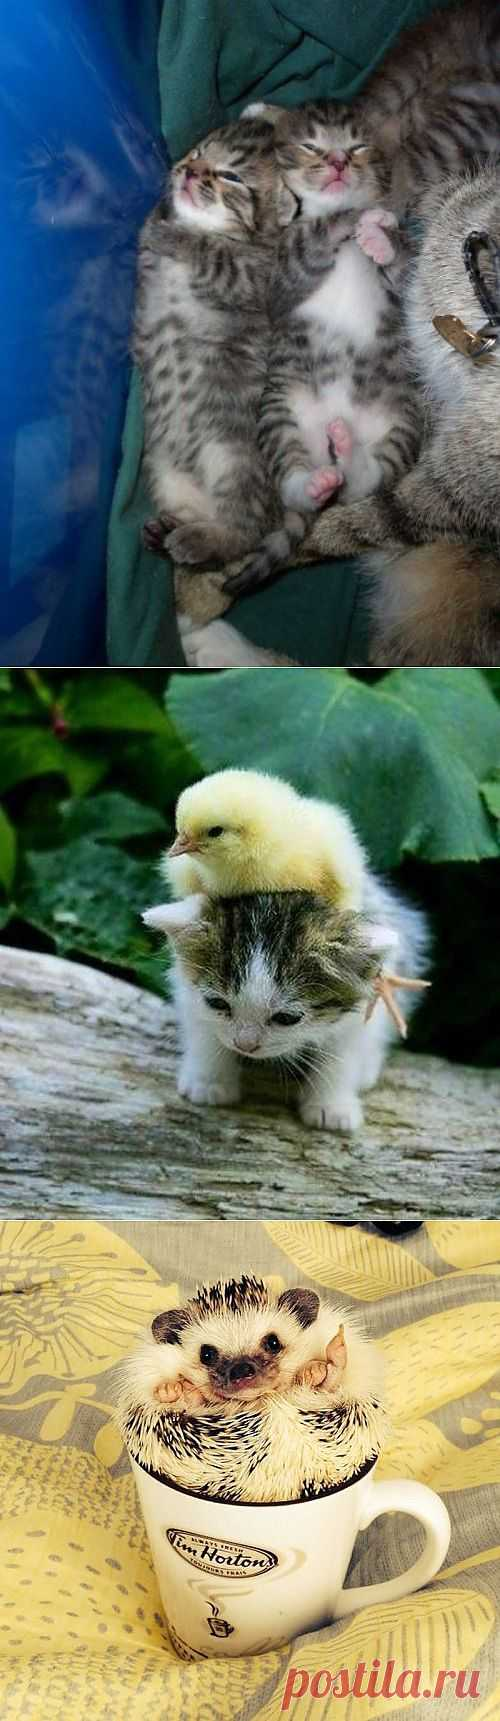 (+1) a subject - Animals cuties | Cool pictures